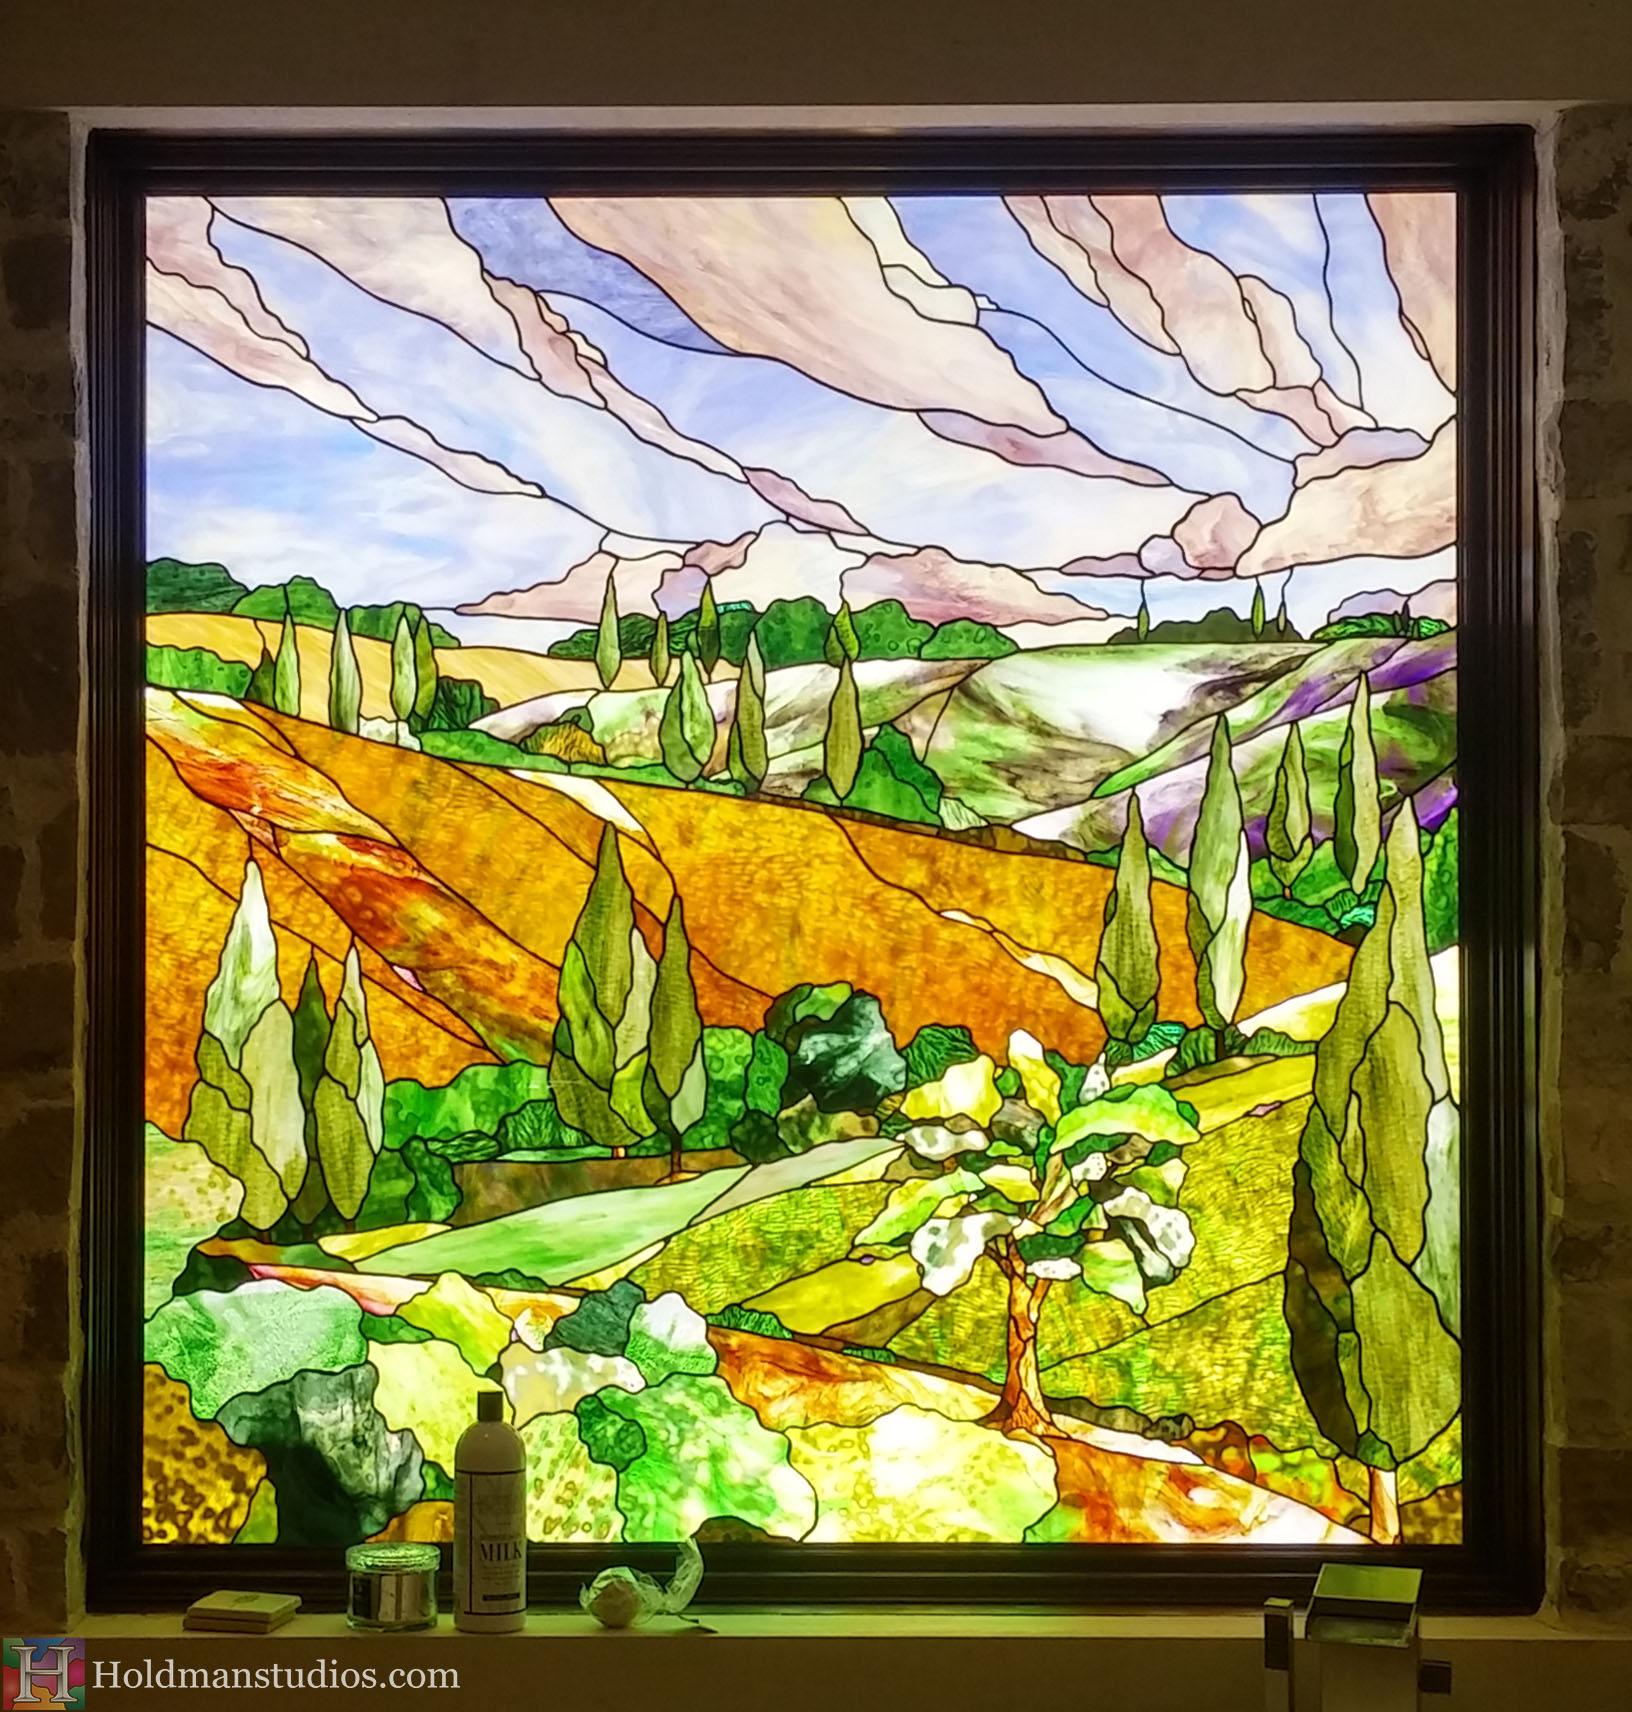 Holdman-Studios-Stained-Glass-Bathroom-Window-Landscapes-Trees-Bushes-Hills-Sky-Clouds-Crop.jpg